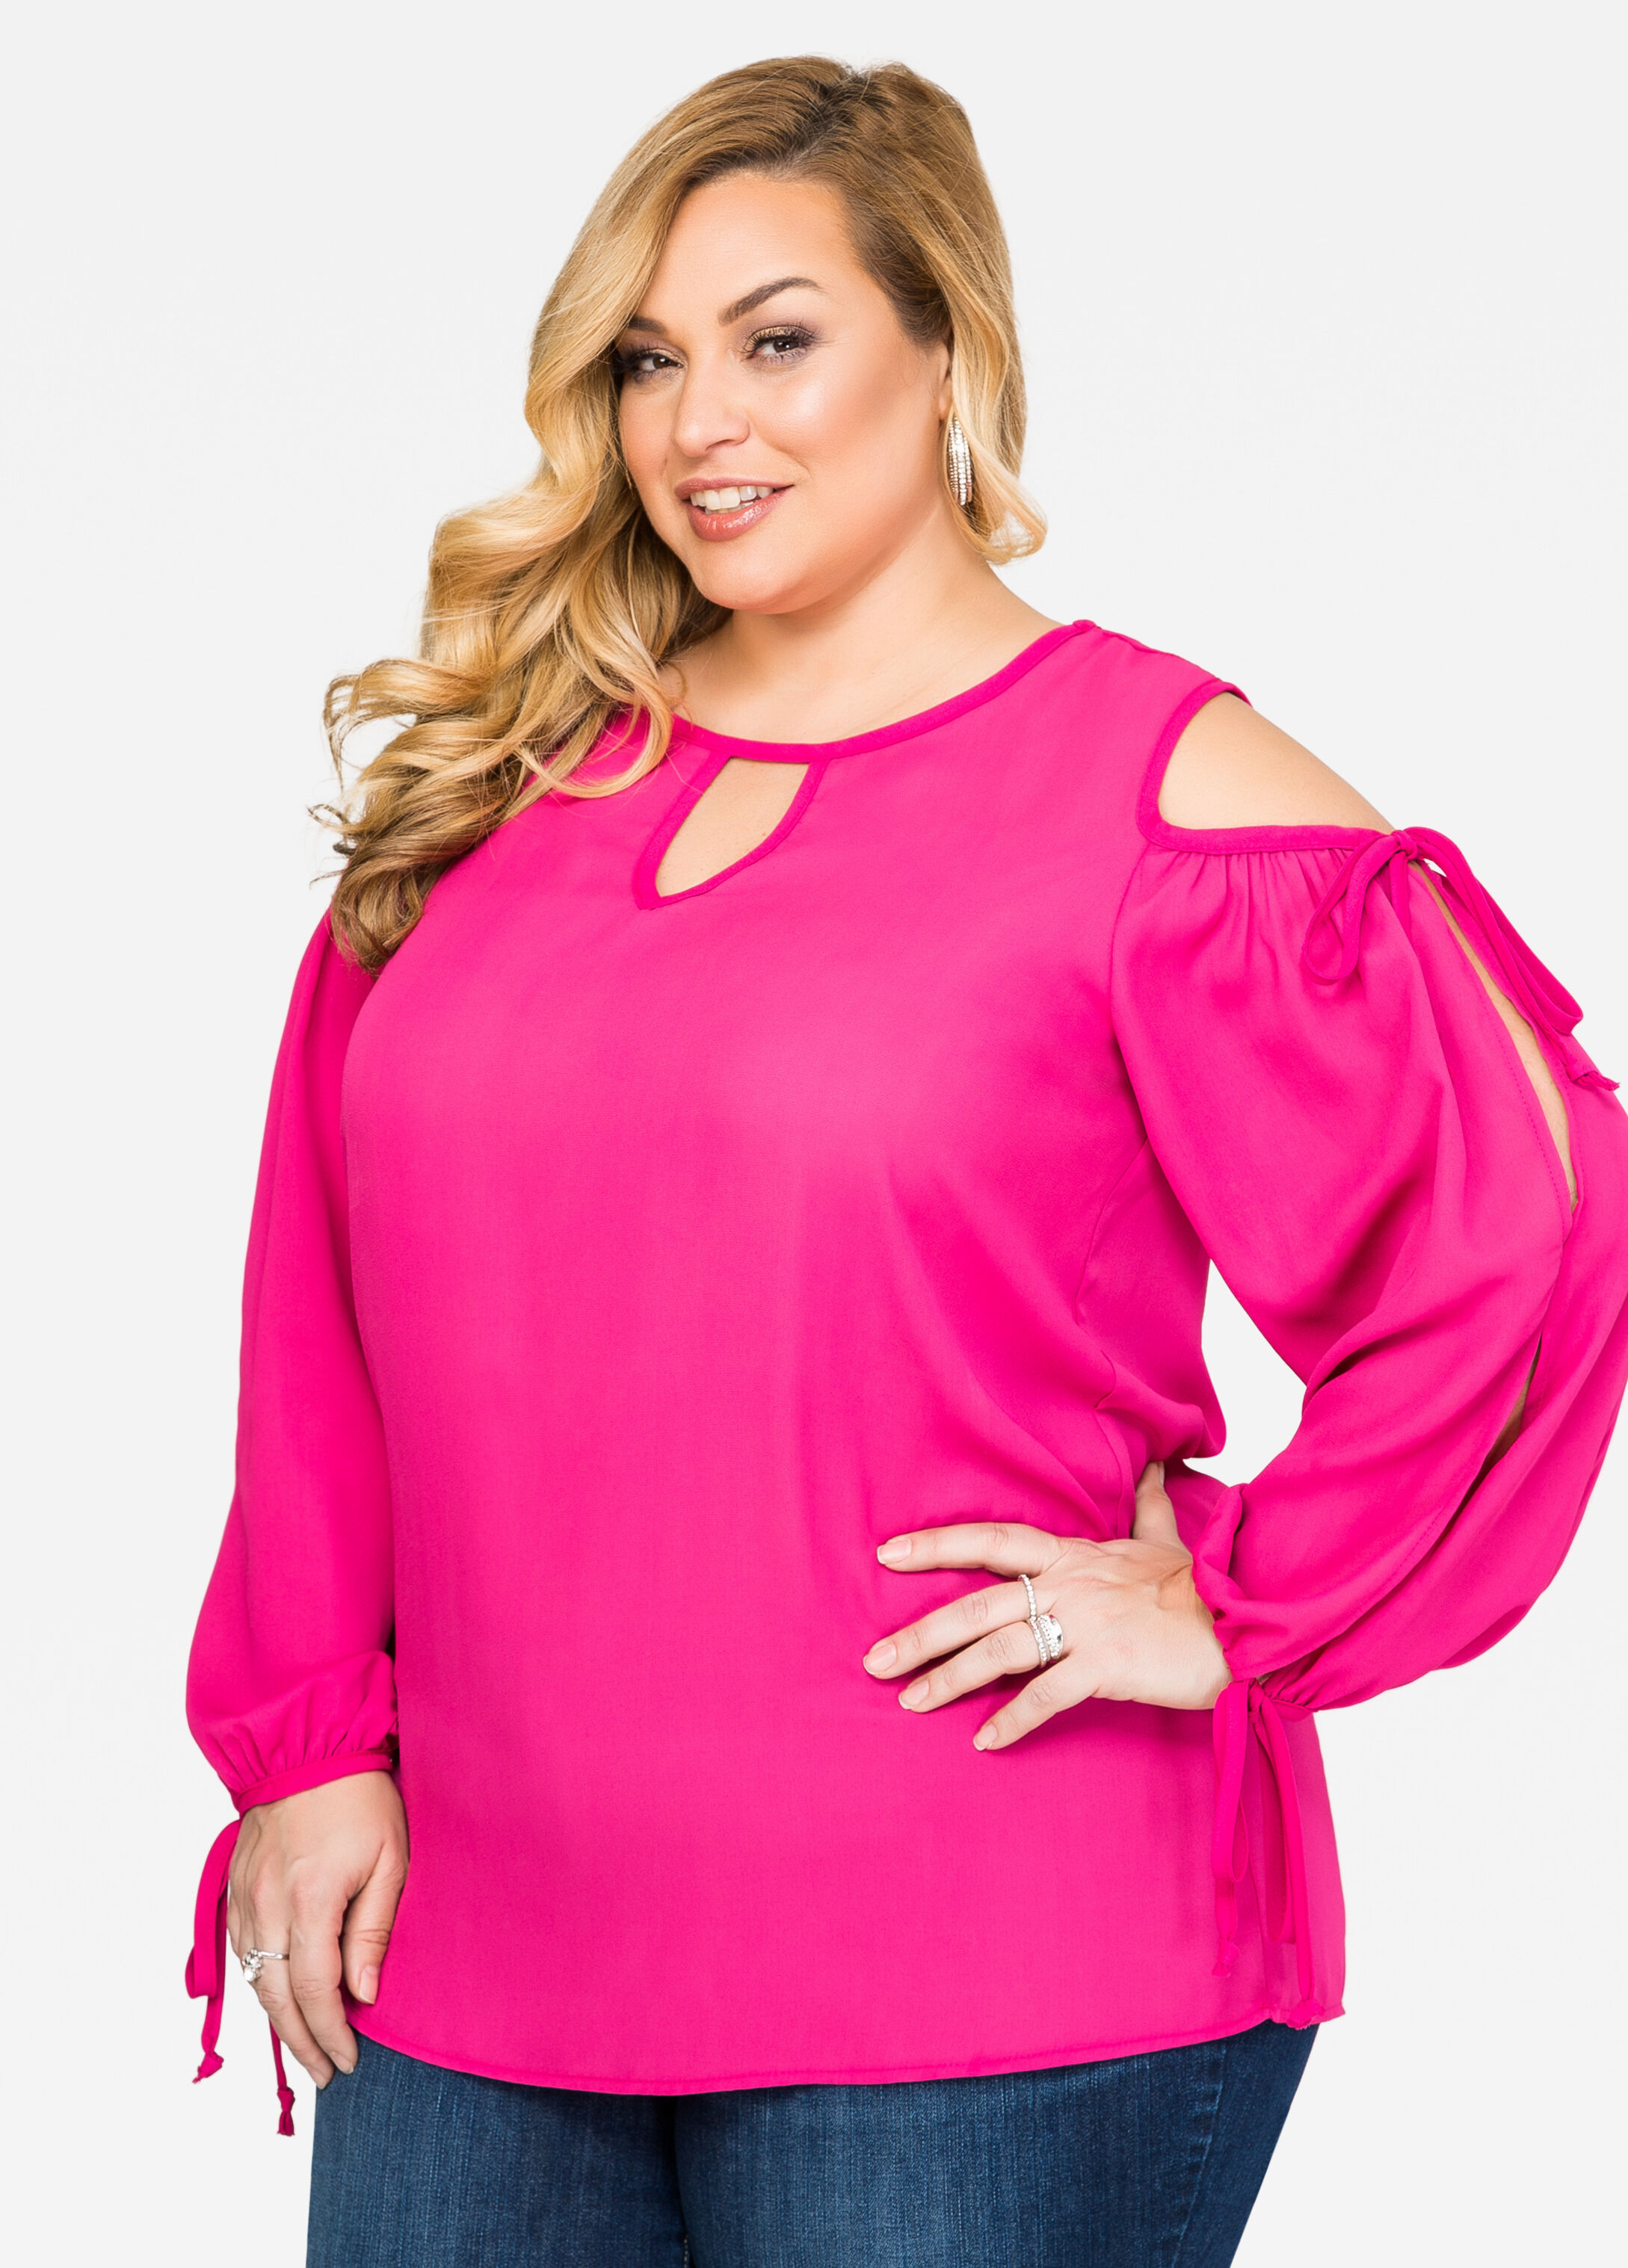 Buy Plus Size Peasant Blouses for Women - Ashley Stewart